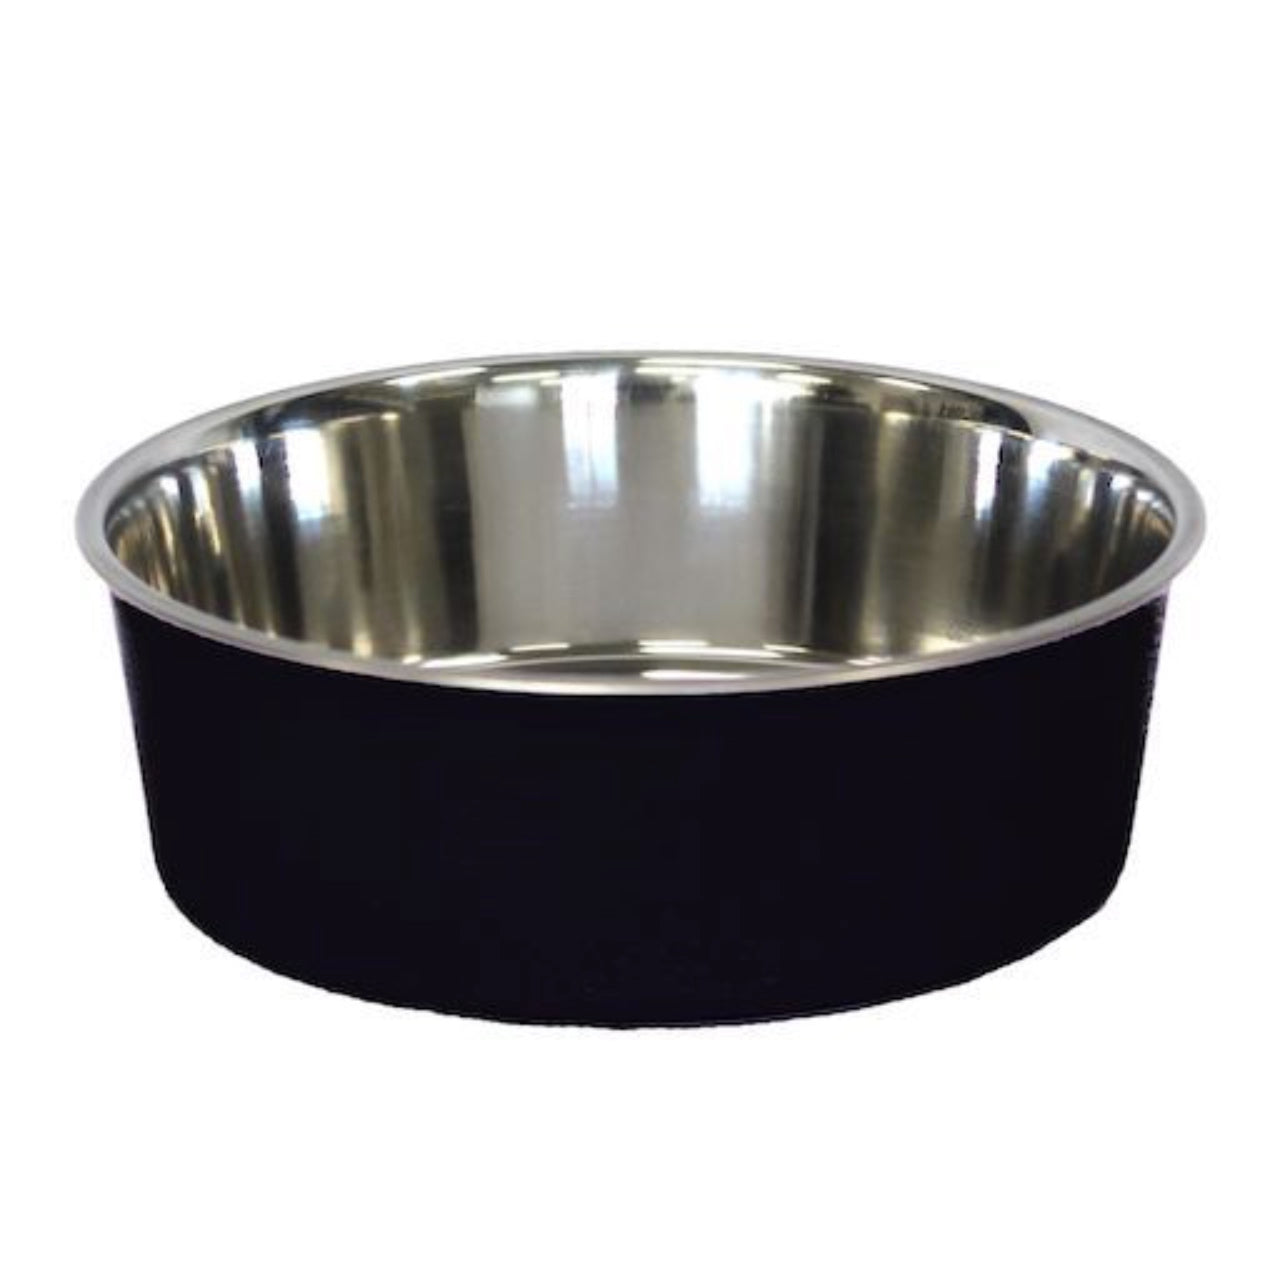 Bella Stainless Steel Pet Bowl -Black